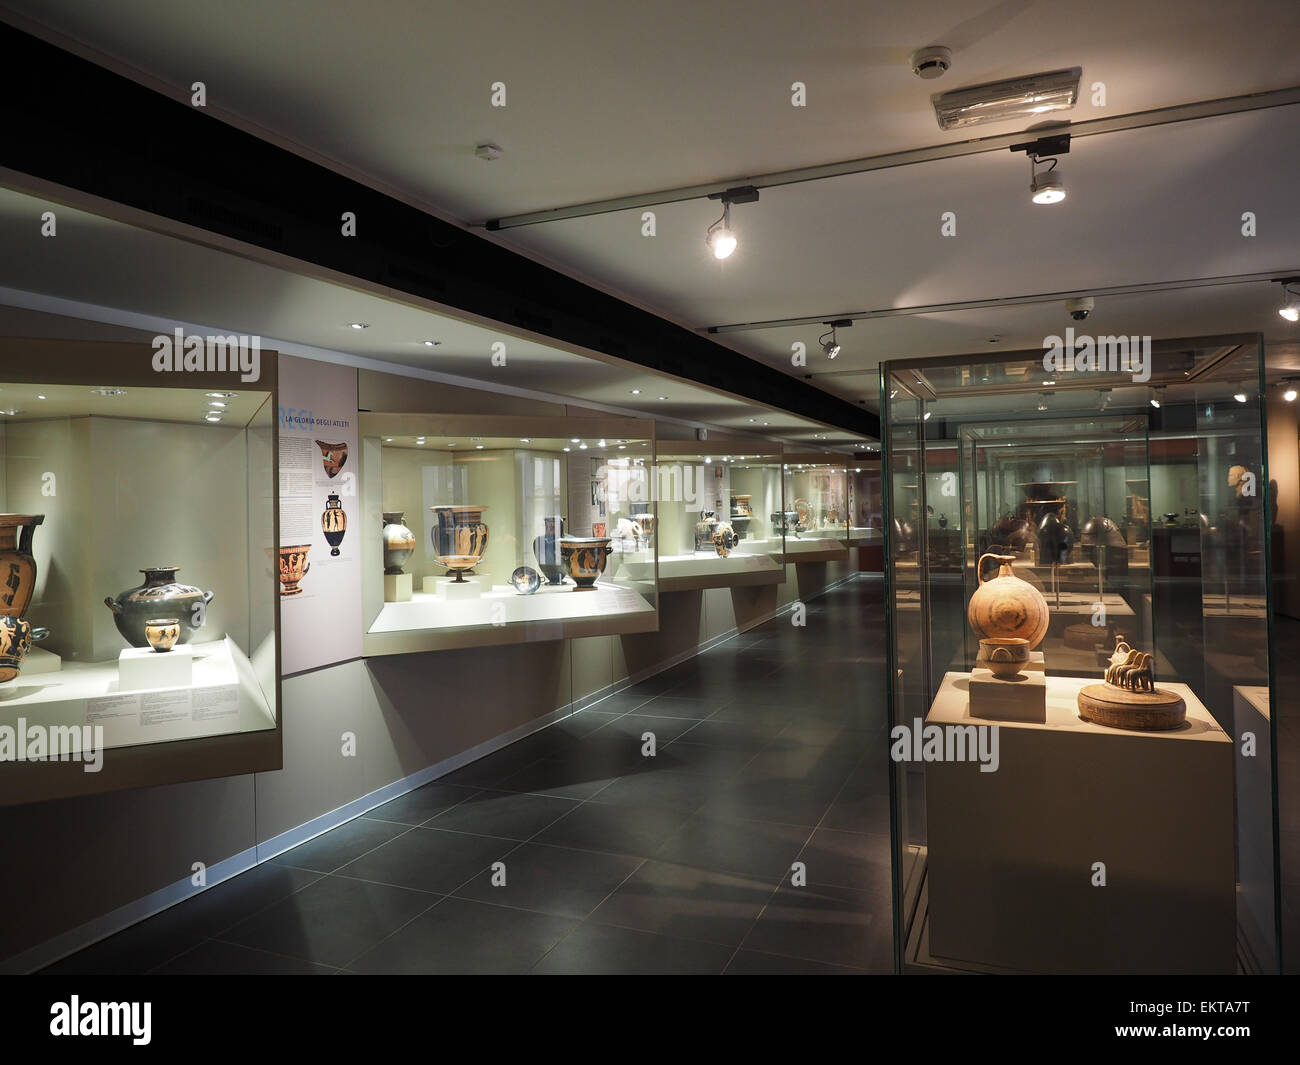 Archaeological Museum, Corso Magenta street, Milan, Lombardy, Italy, Europe Stock Photo